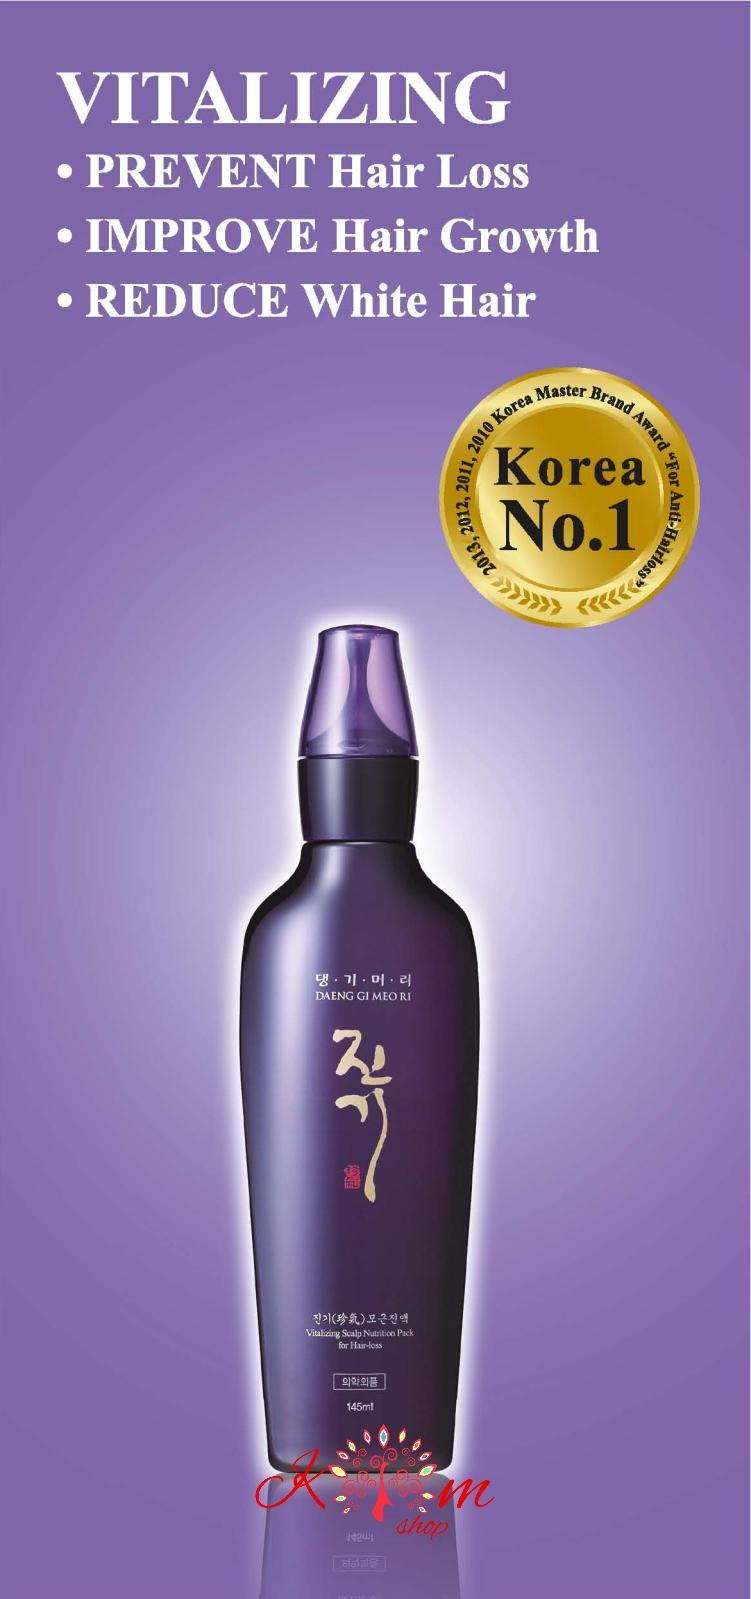 Kelebihan Daeng Gi Meo Ri Jingi Haircare Set Perawatan Rambut Rontok Shampoo Penumbuh New Gold By 500ml Kim Shop Vitalizing Scalp Nutrition Pack For Hair Loss